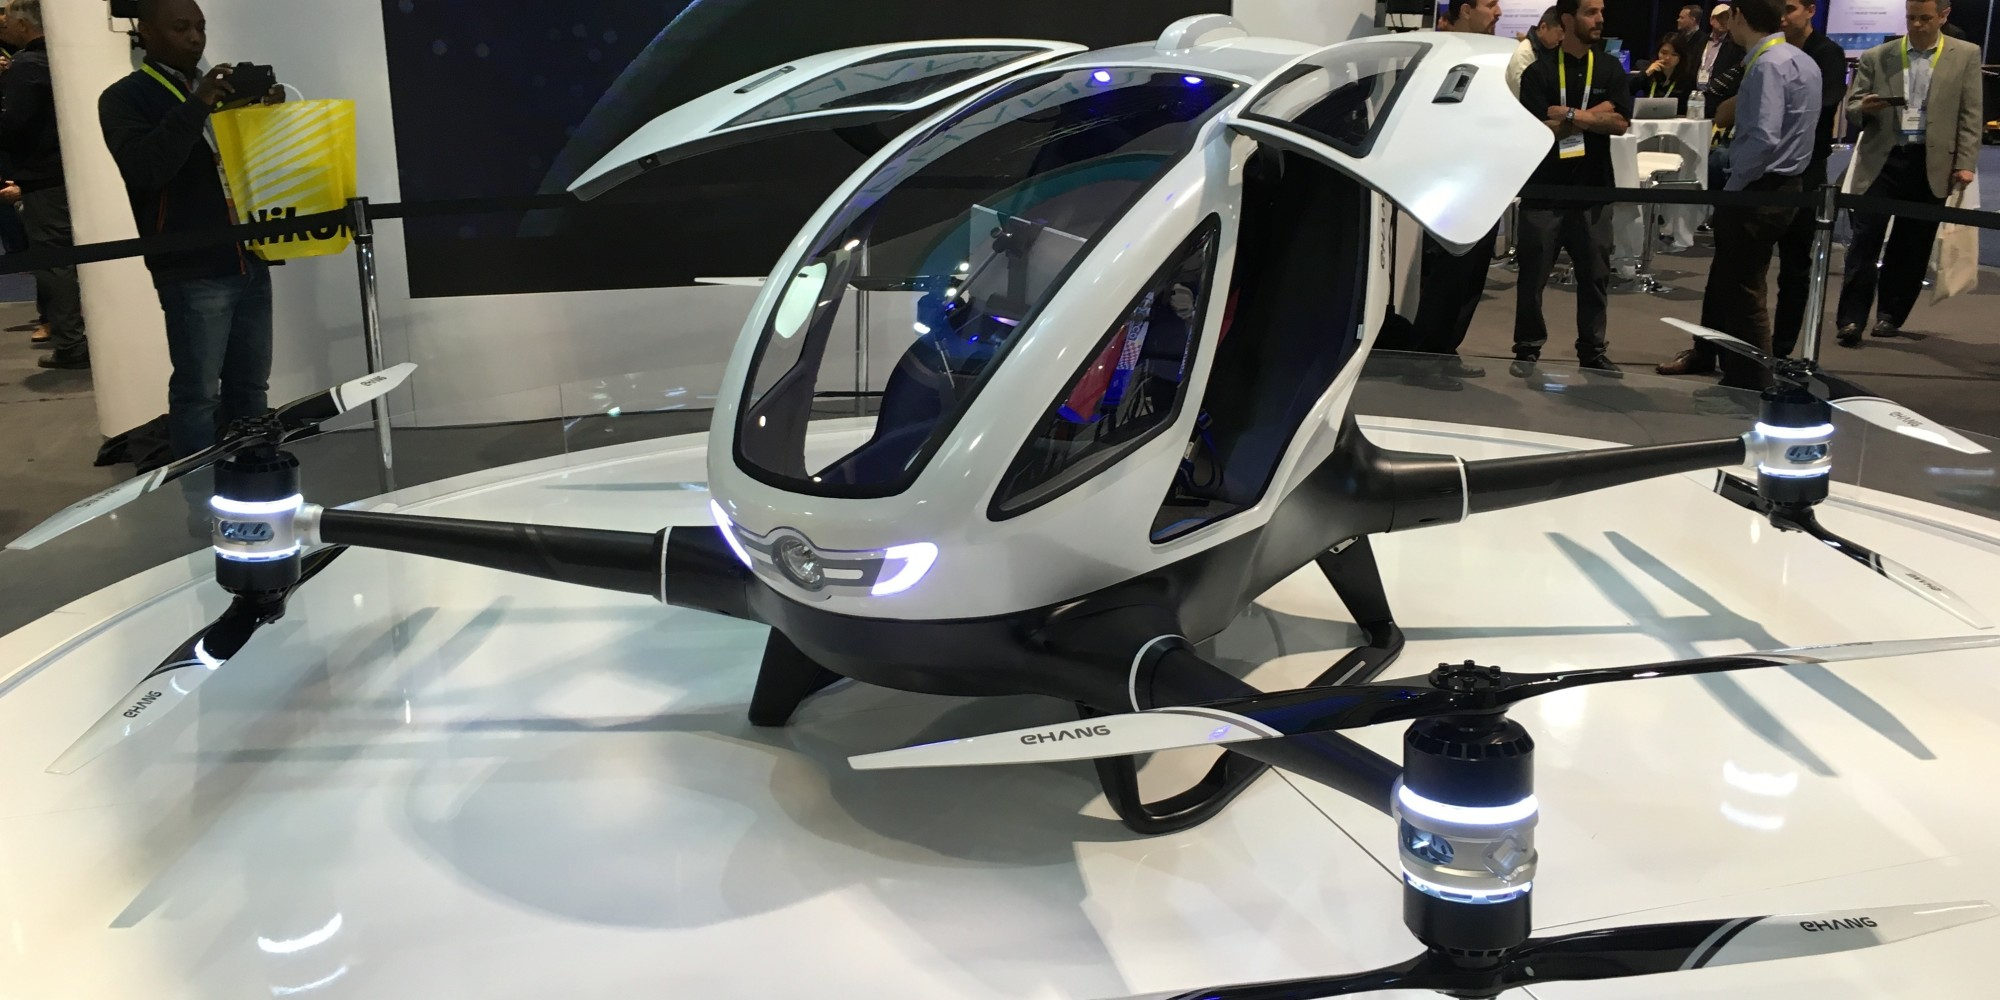 Uber Car Seat >> The EHang 184 Is A Giant Self-Driving Drone For Humans ...